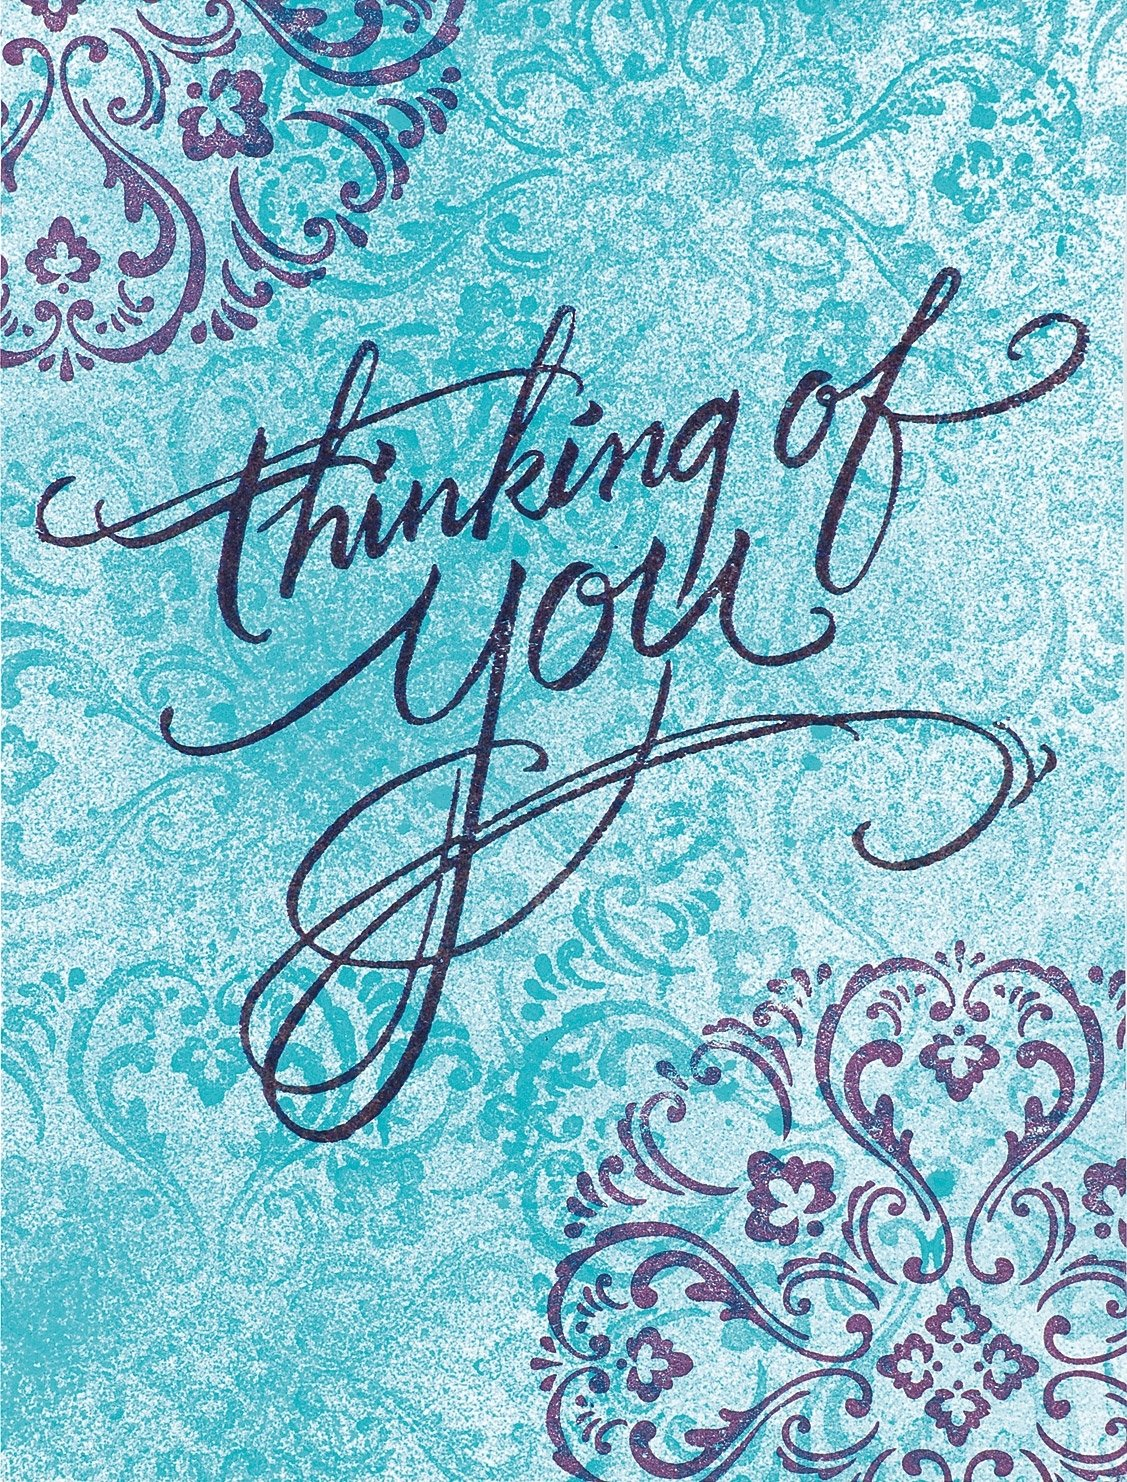 10 Most Popular Thinking Of You Card Ideas thinking of you card